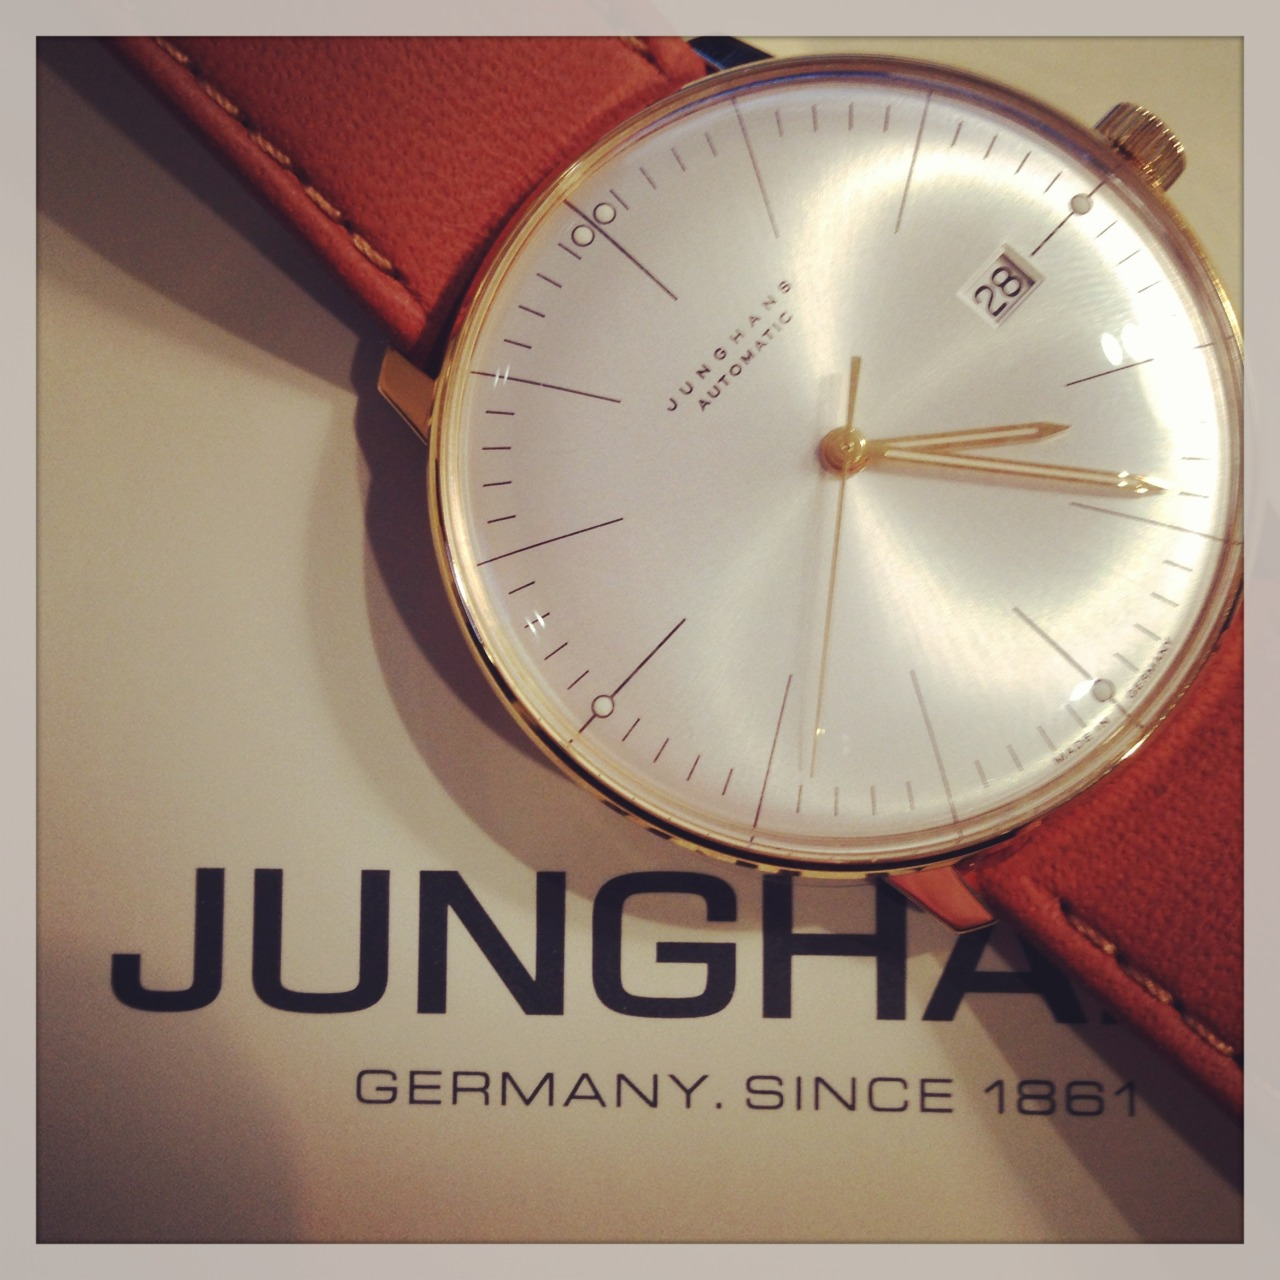 Here's another incredibly sleek design from Junghans X Max Bill. Shop this classic timepiece now> http://bit.ly/V4f1MZ